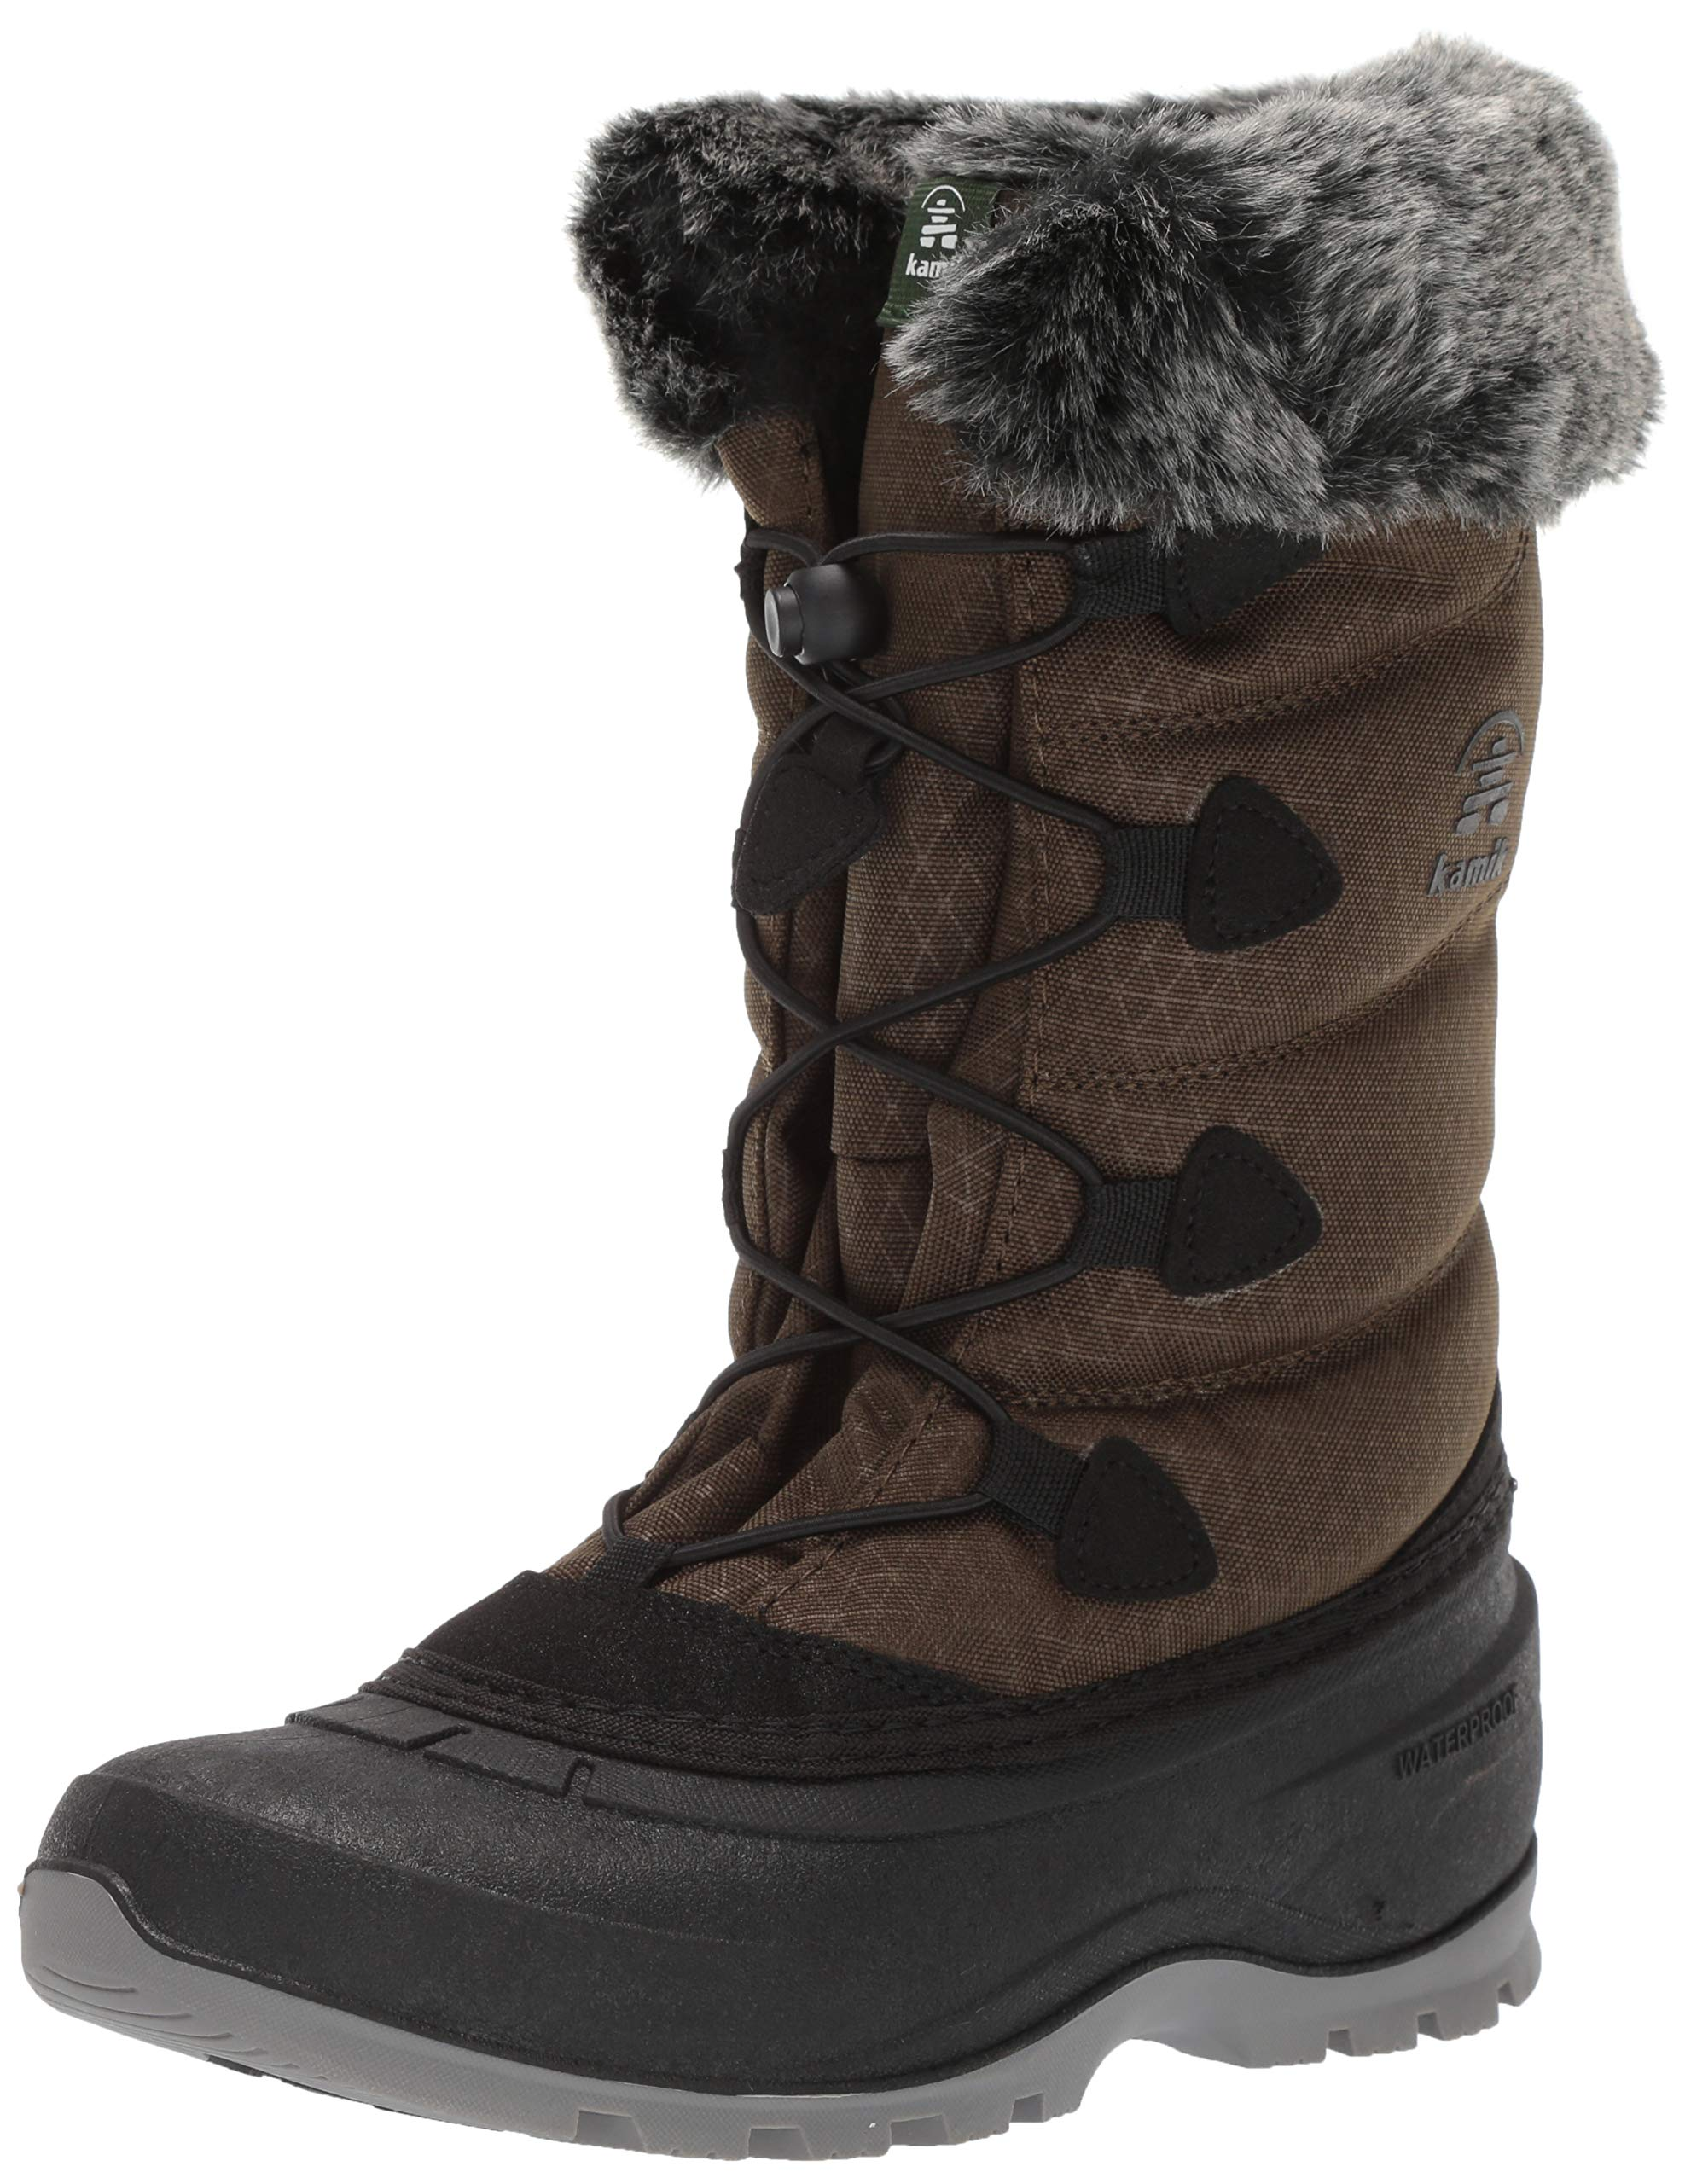 Kamik Women's Momentum2 Snow Boot - AB Ankle Boot Review Blog